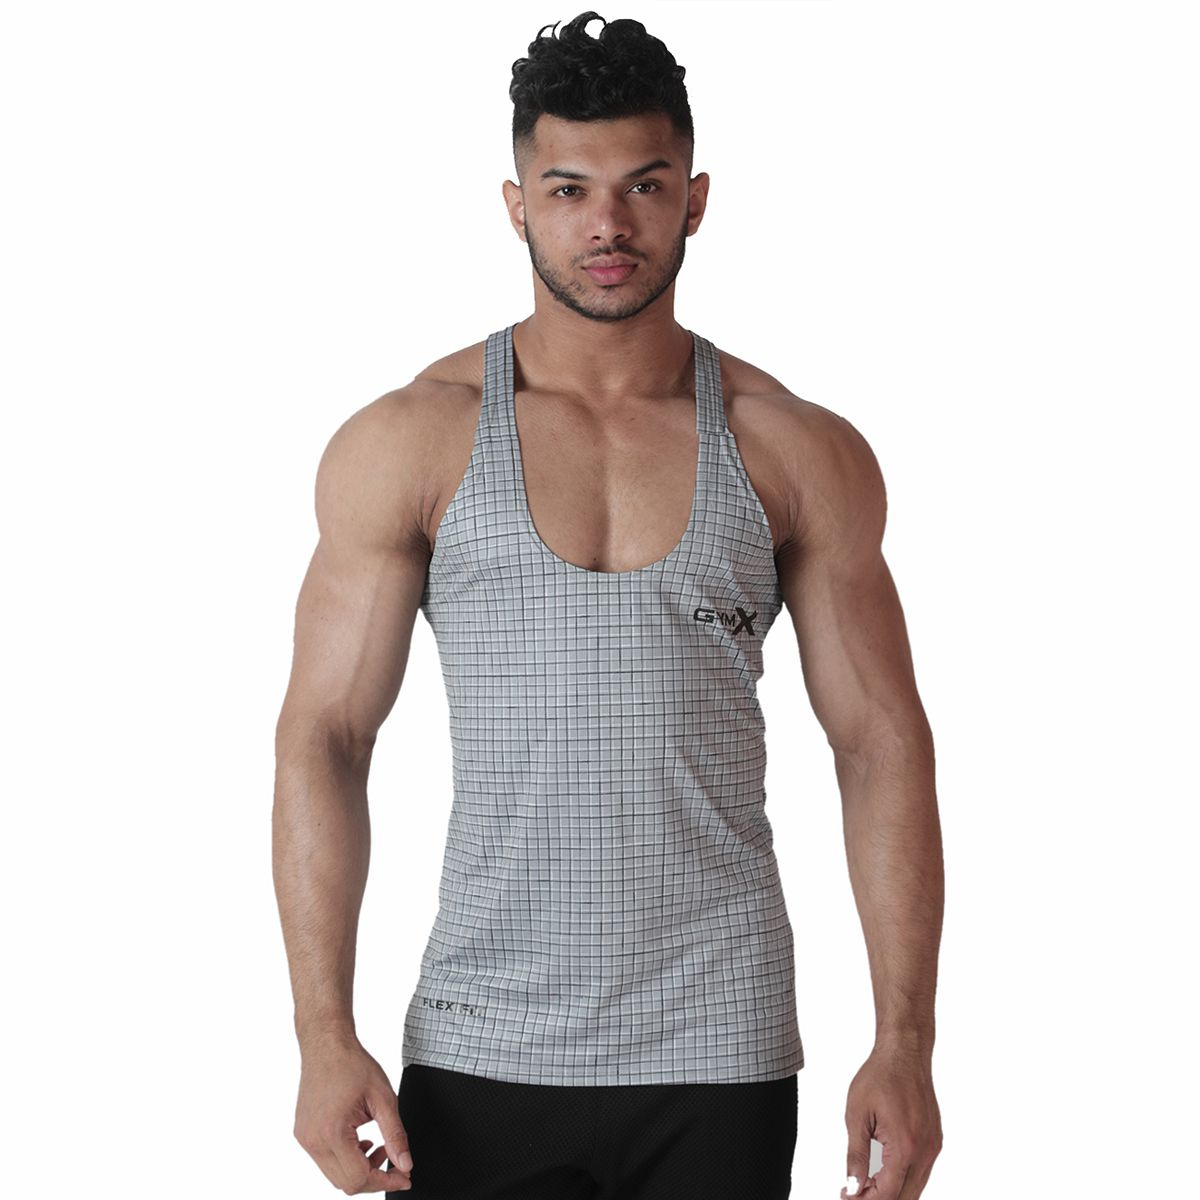 GymX Mens Polyester Axiom Stringer- Platinum Strike  Grey Sando